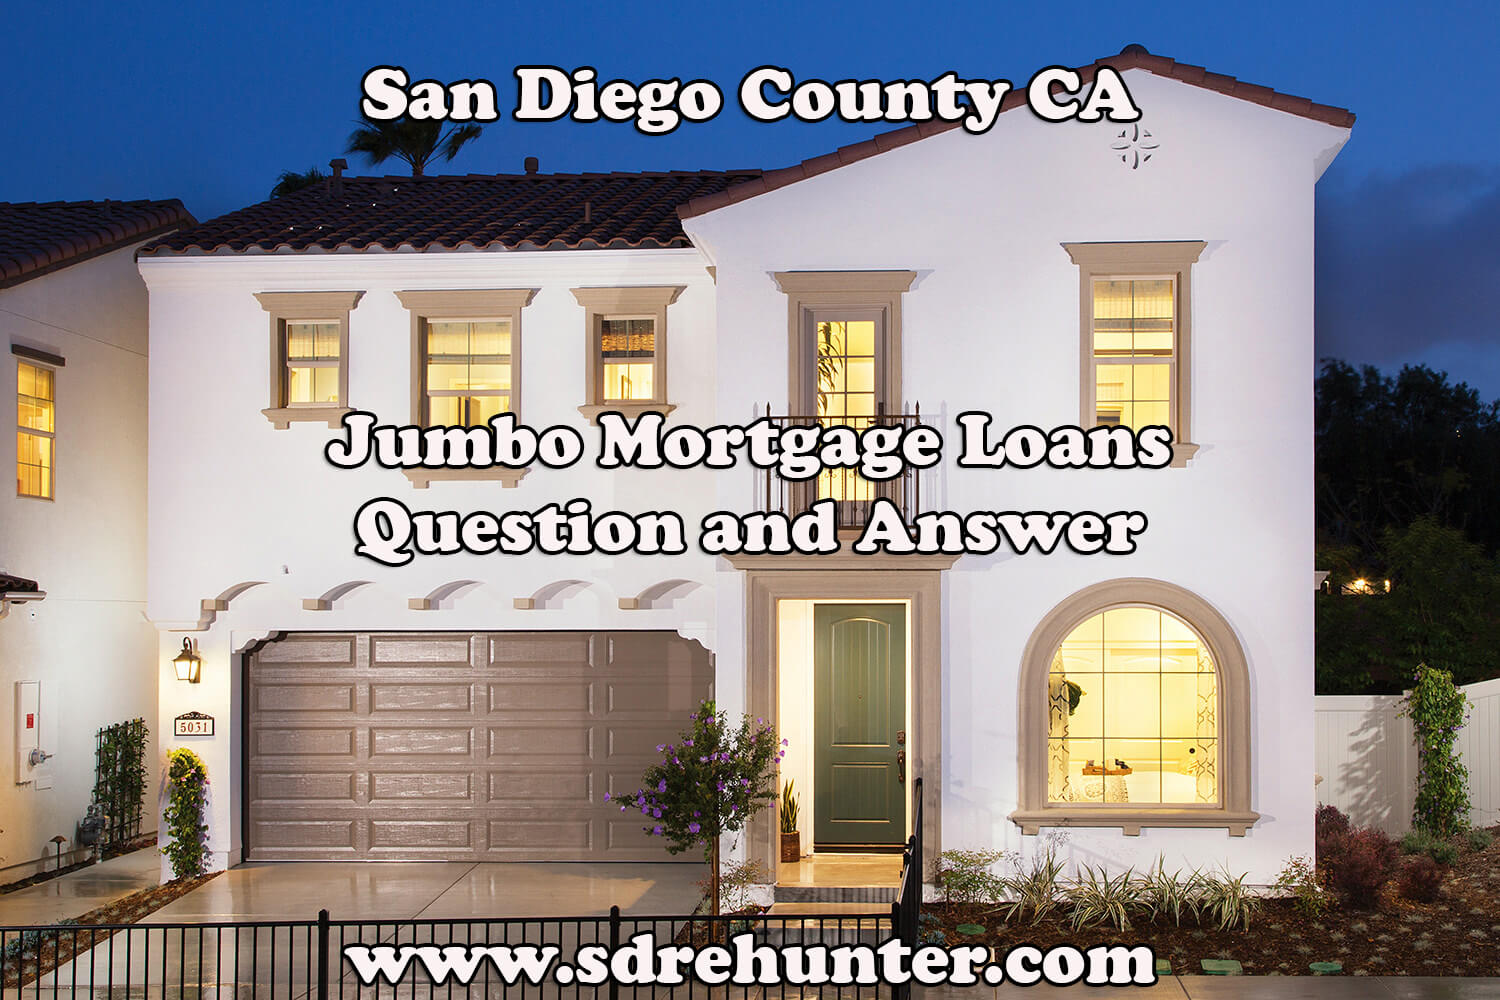 San Diego County CA Jumbo Mortgage Loans Question and Answer